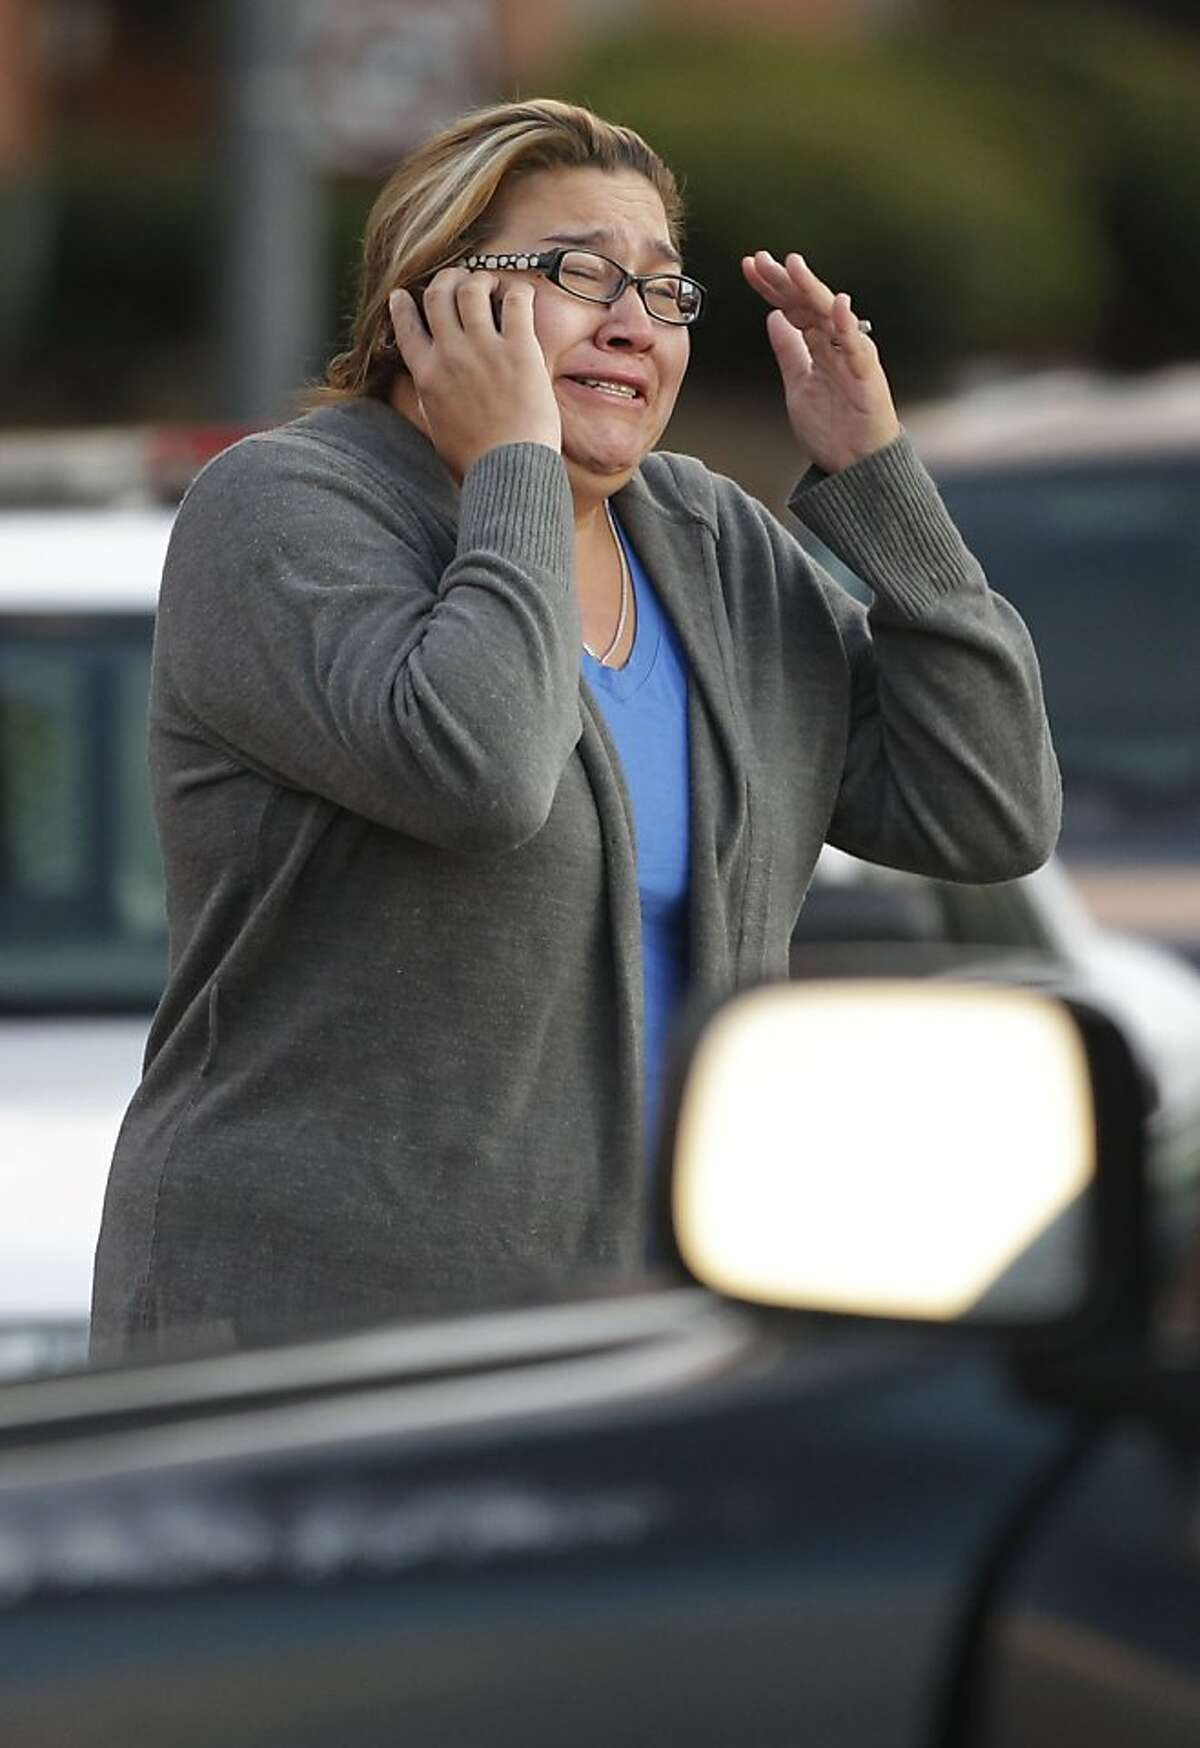 A woman who did not want to give her name reacts as she waits to hear about her father who works at the Lehigh Southwest Cement Company in Cupertino, Calif., Wednesday, Oct. 5, 2011. Authorities say a disgruntled employee opened fire at a meeting at the plant, killing two people and wounding six others. Santa Clara County Sheriff's spokesman Jose Cardoza said the shooting at Lehigh Southwest Cement Company occurred around 4 a.m. Wednesday. (AP Photo/Paul Sakuma)